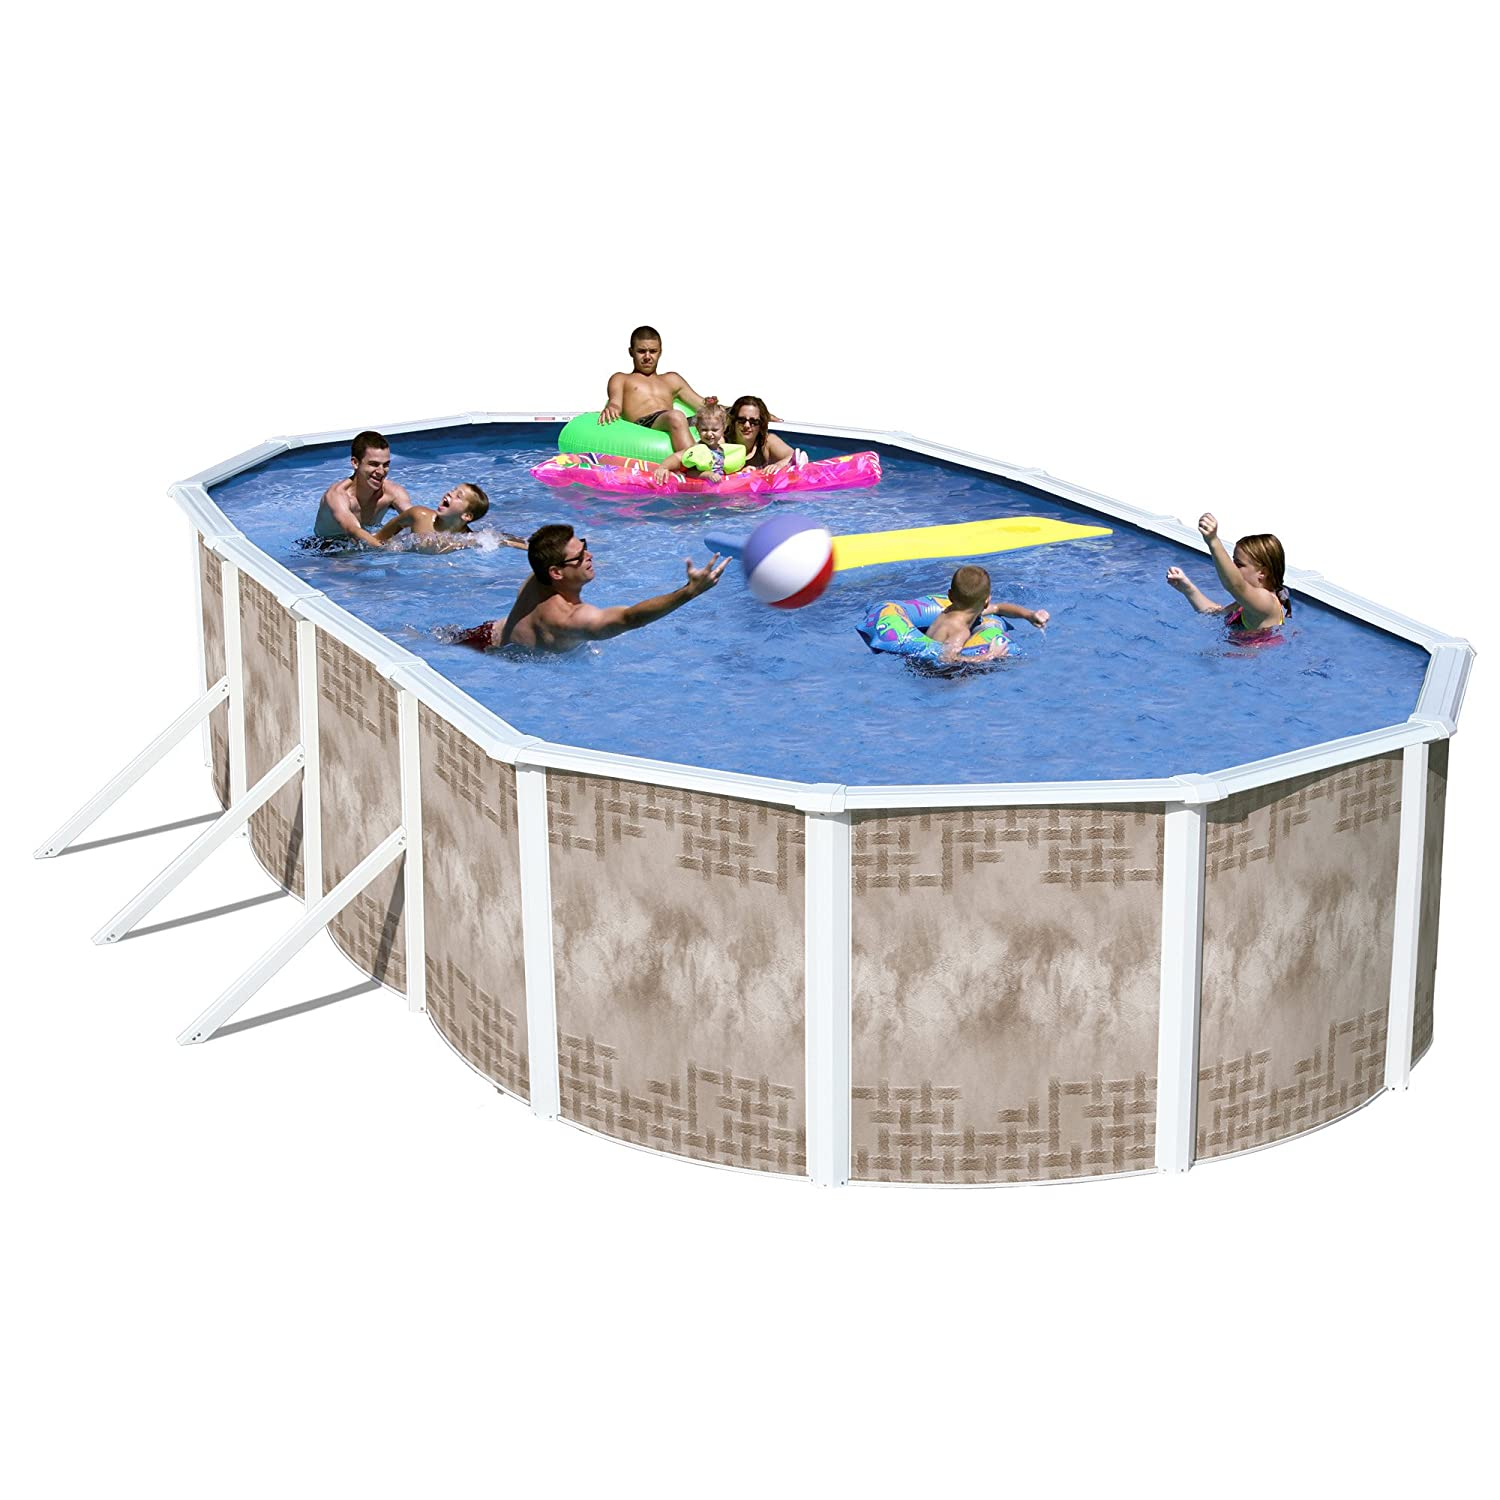 Best 5 above ground pools to buy in 2017 best 5 products for Purchase above ground swimming pool